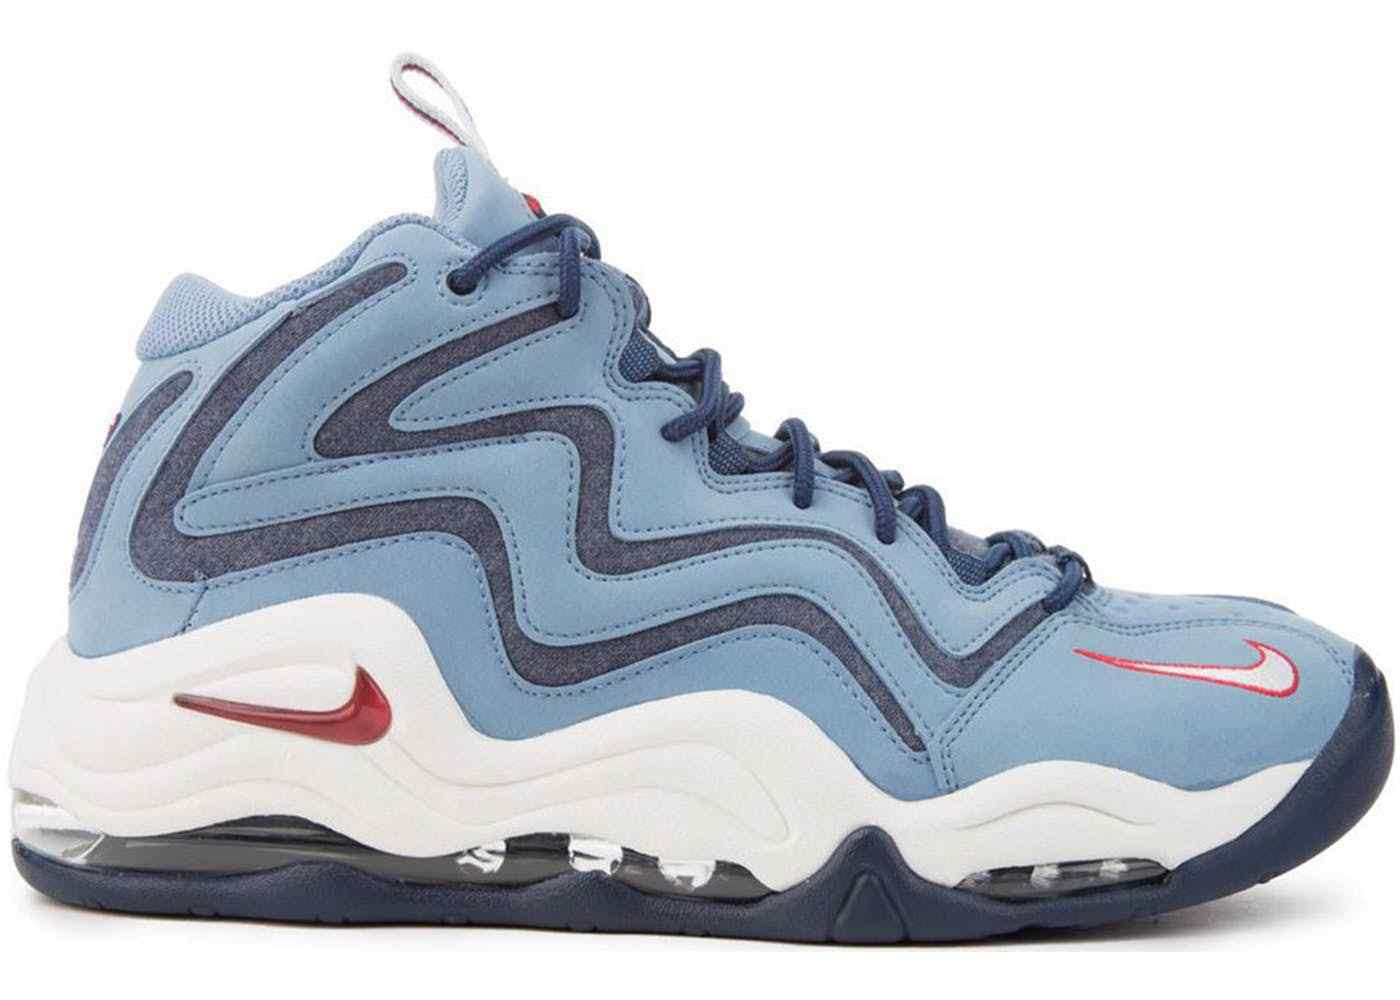 Men's Brand New Air Pippen Wolf bluee Athletic Fashion Sneakers [325001 403]